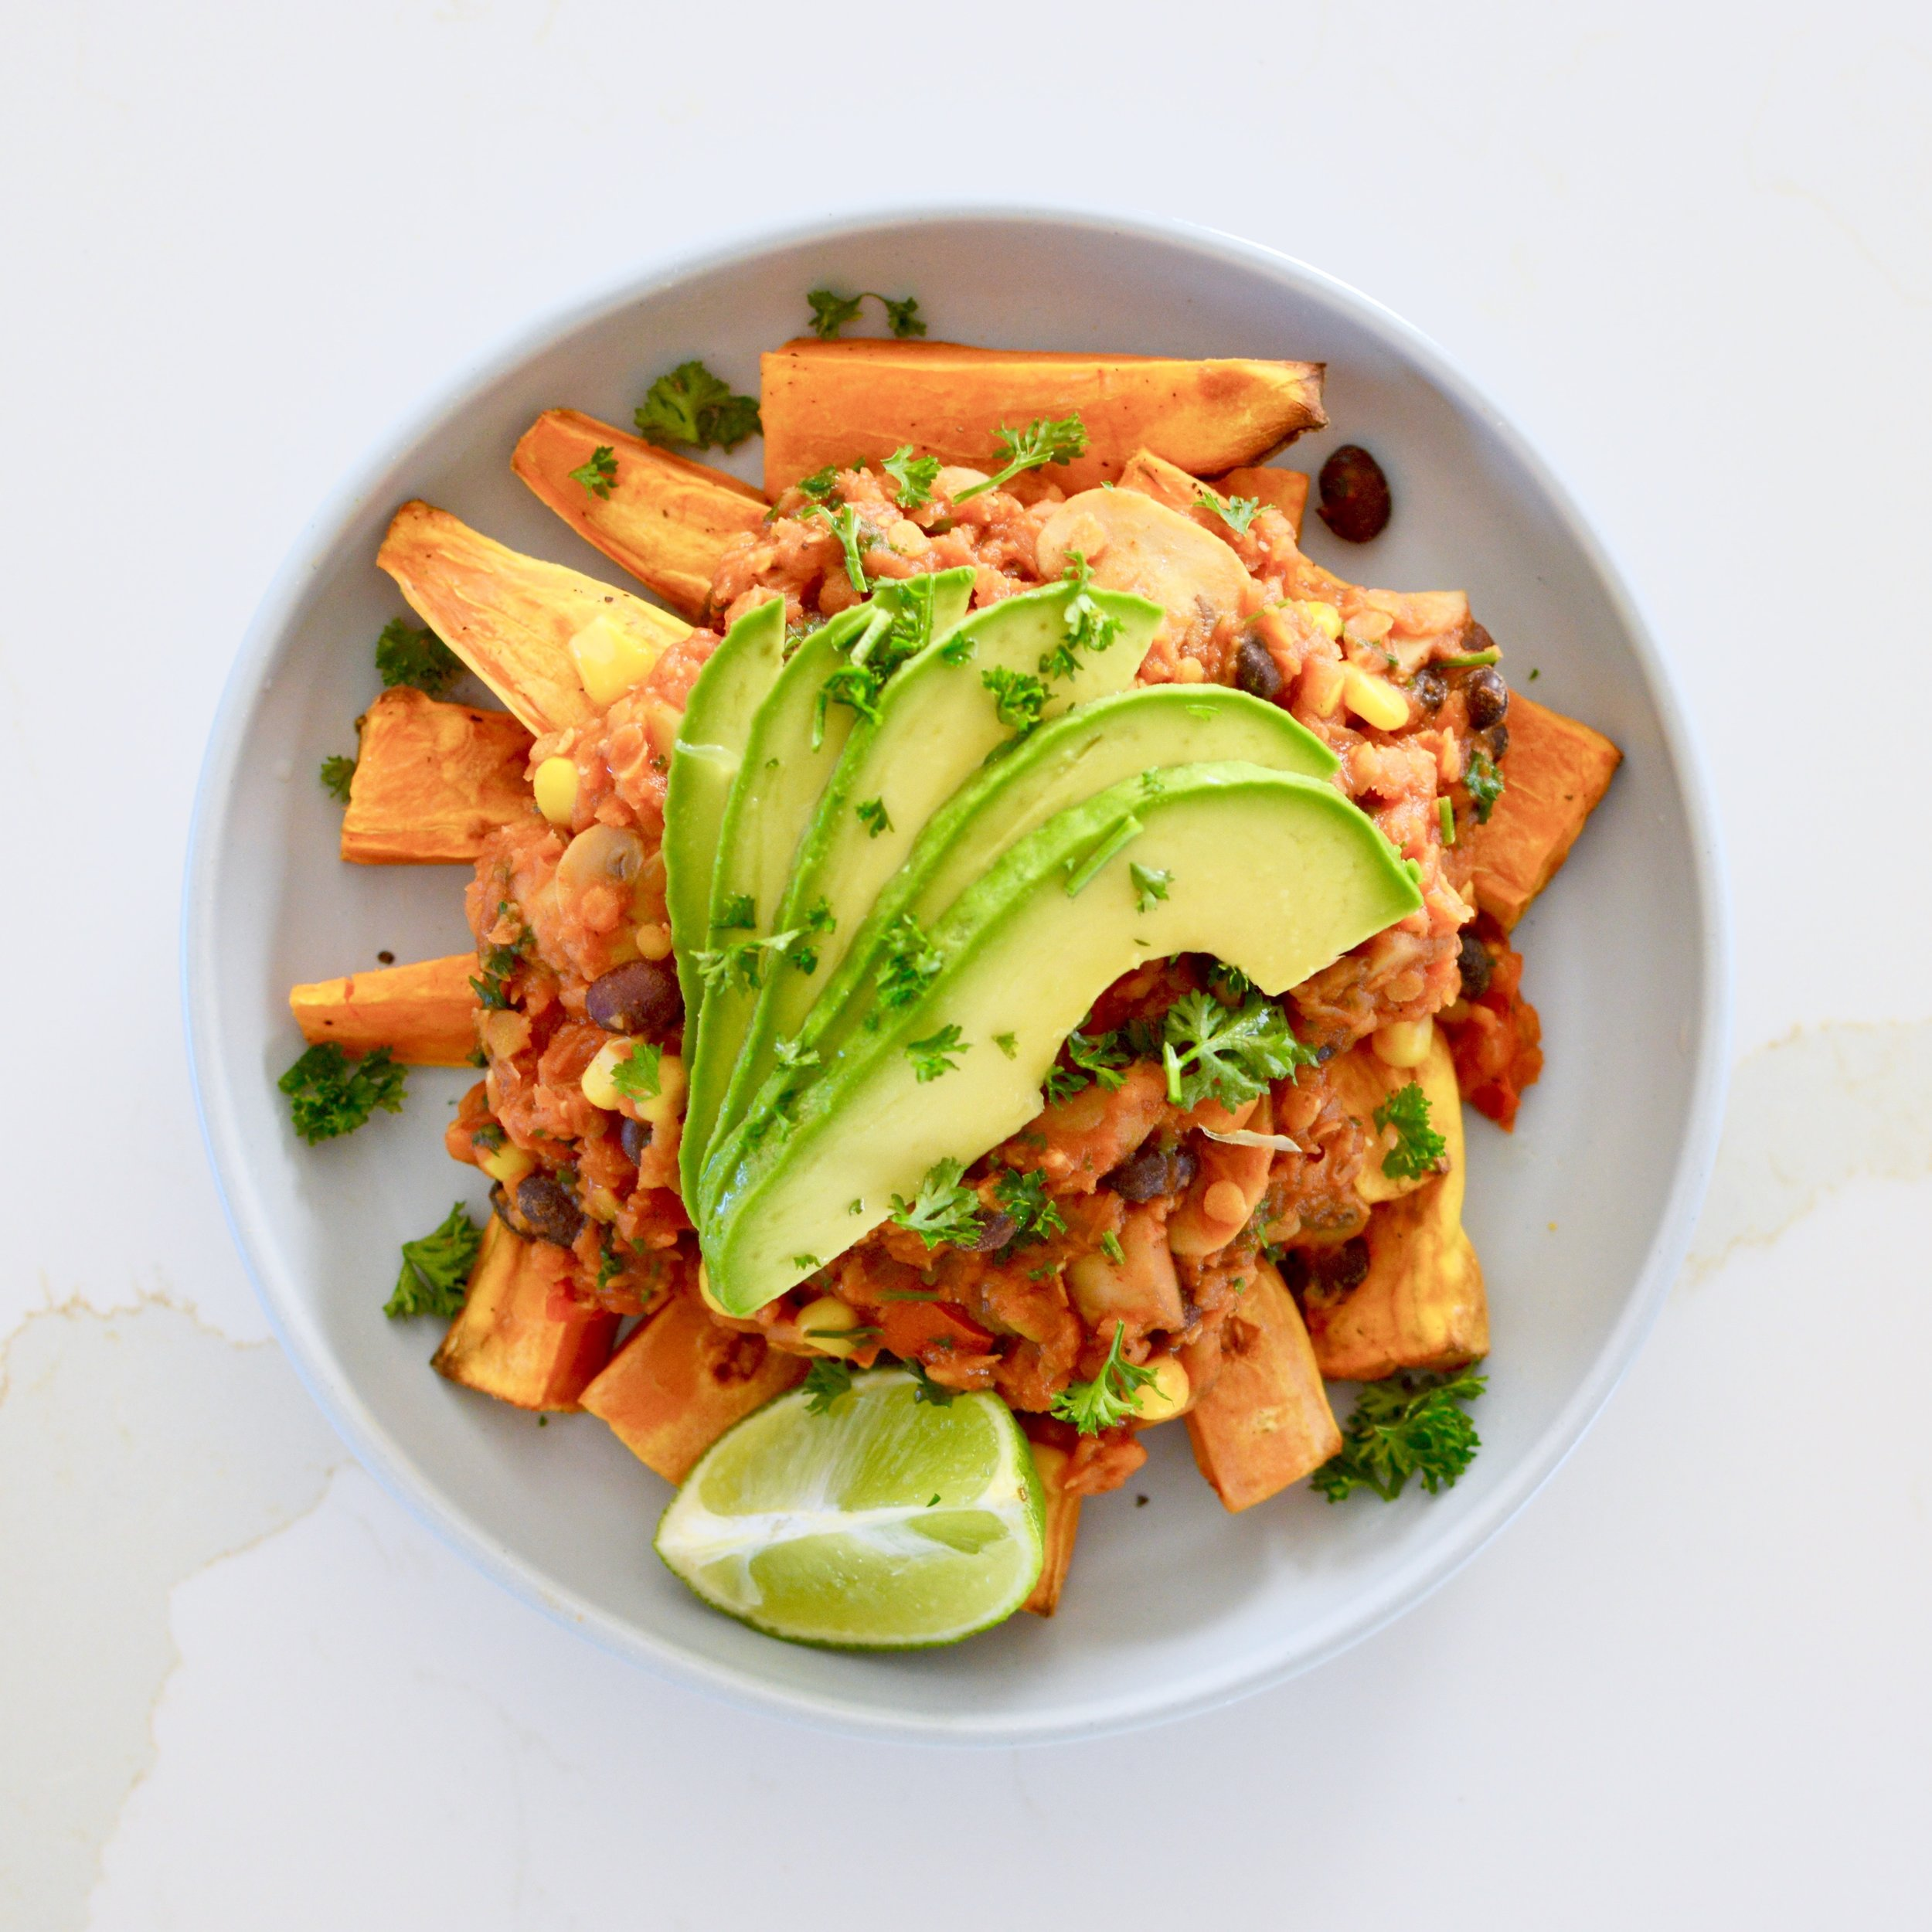 Tex-Mex Lentils with Sweet Potato Wedges